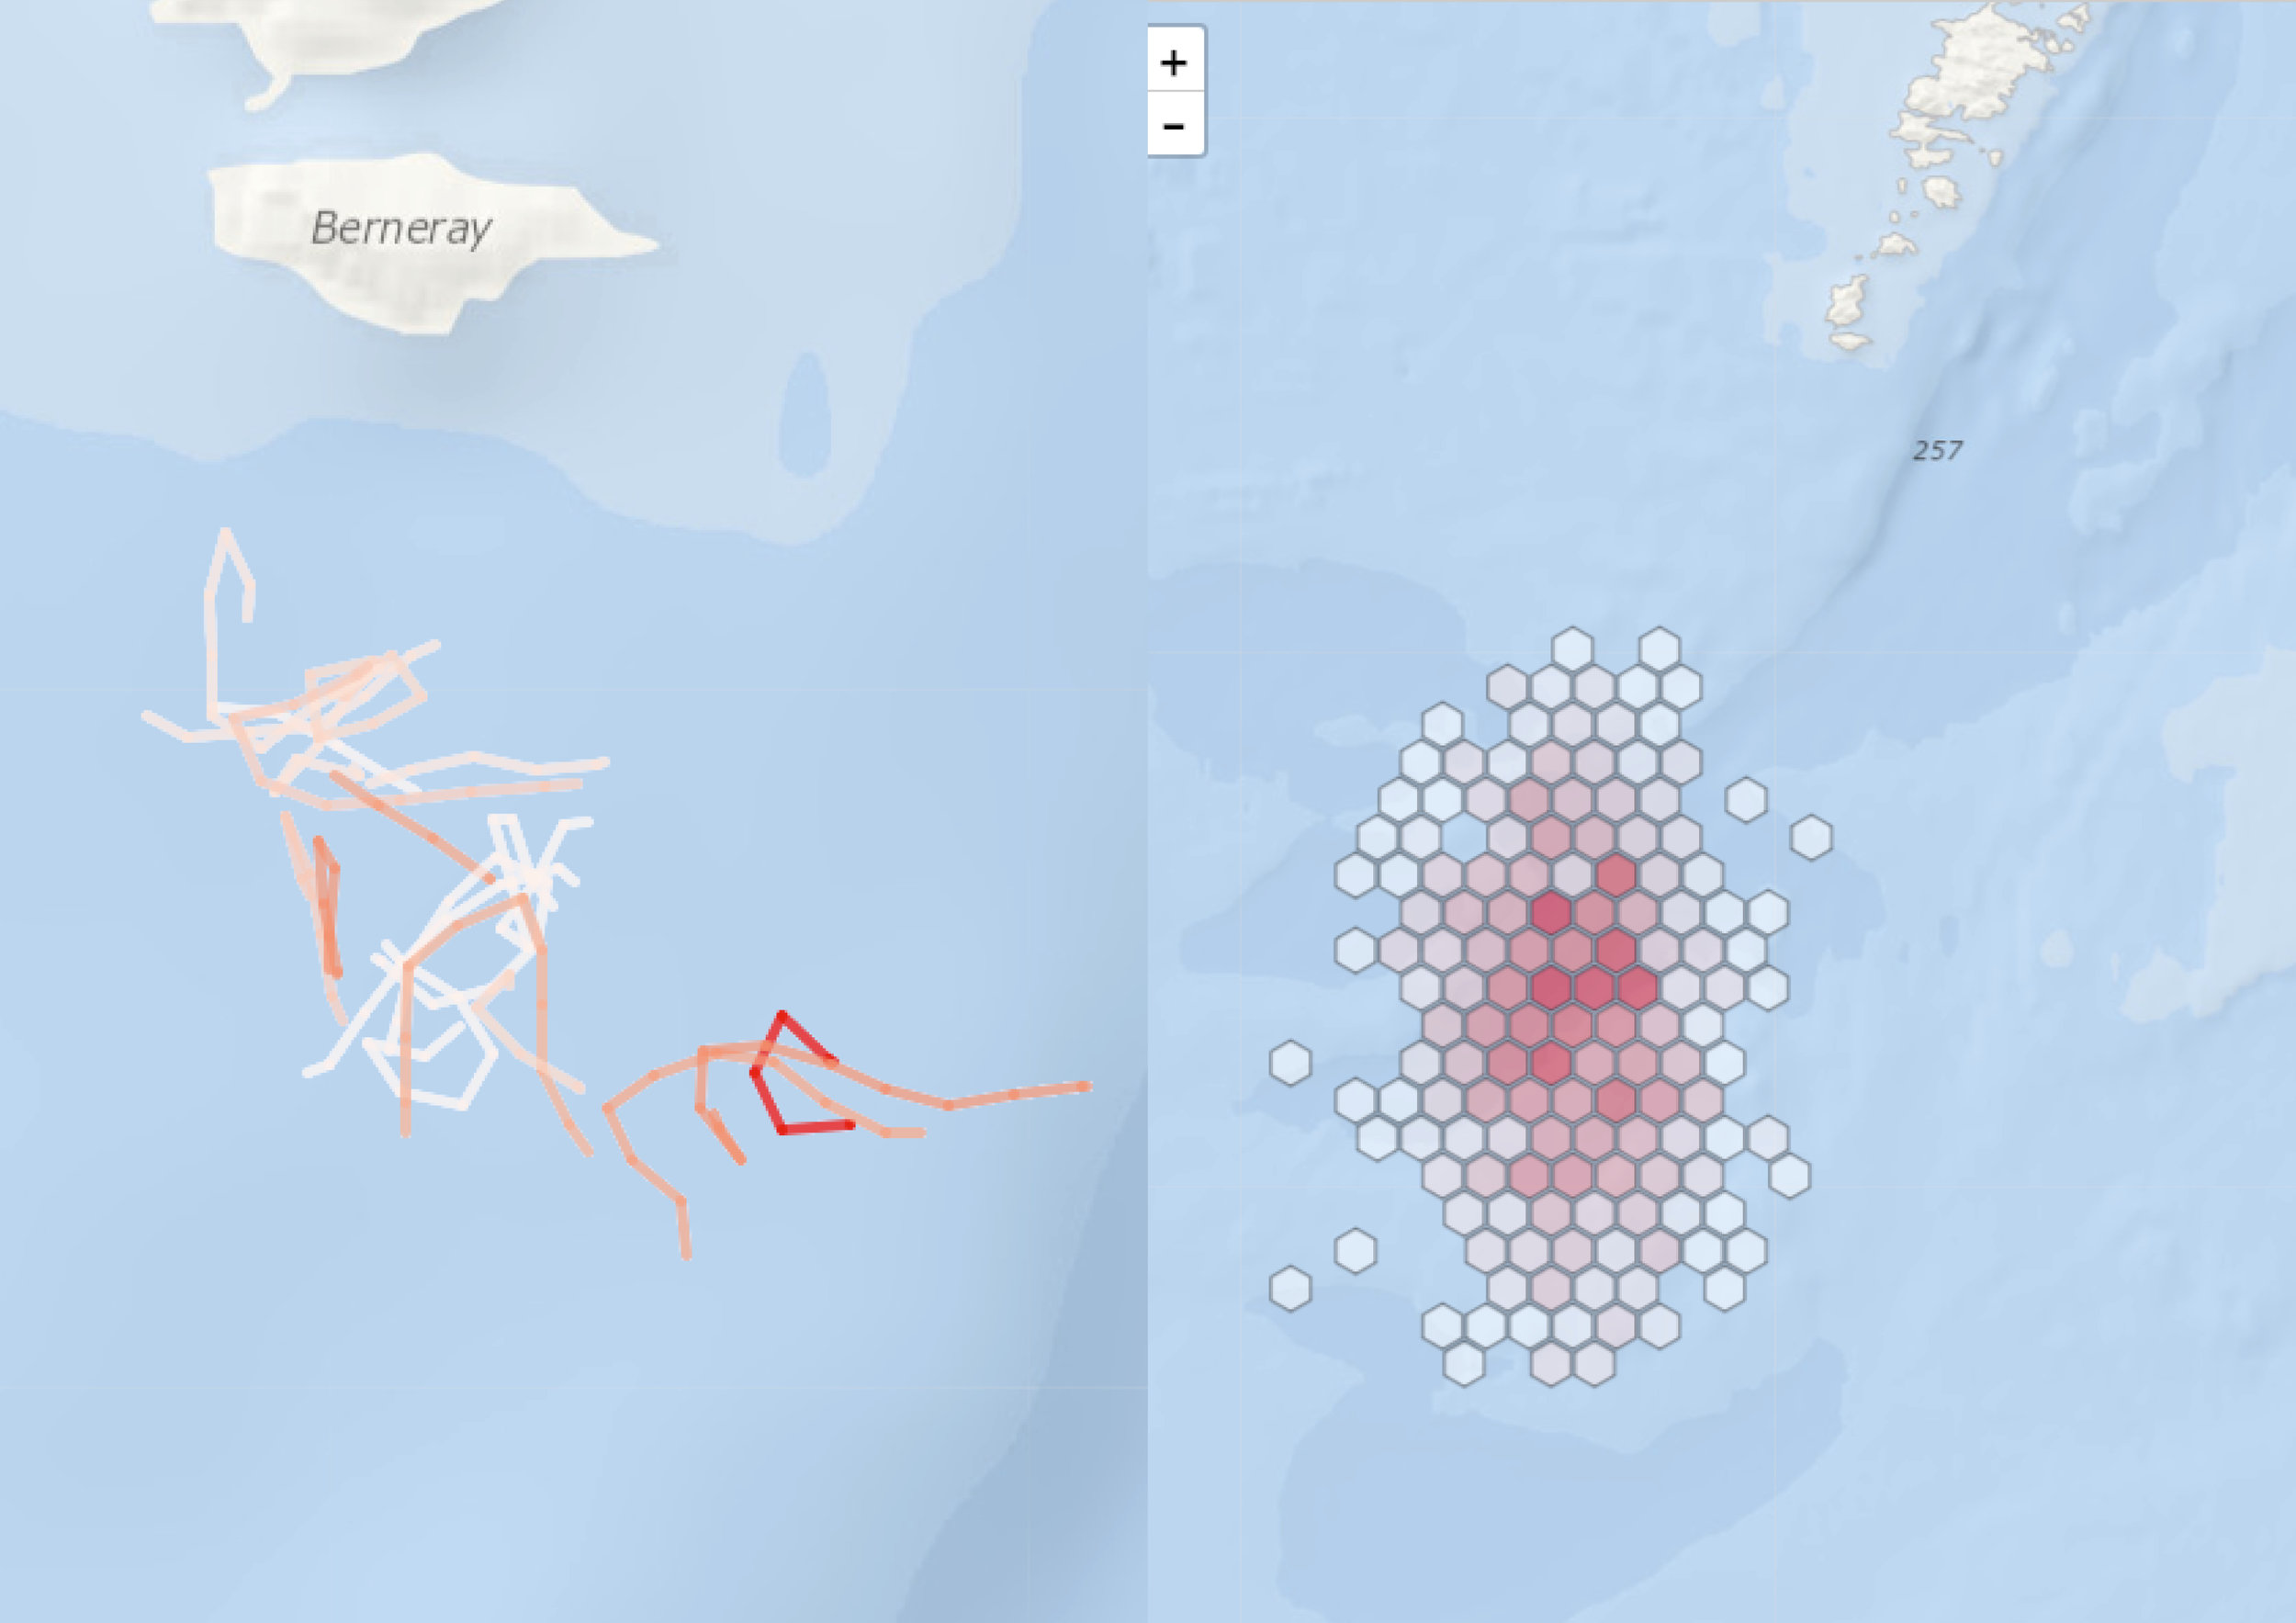 Figure 2: Examples of the potential data products that could be generated from cod/whiting catch information and reported back to fishermen. Left: tow tracks with high catch concentrations outlined; Right: heat map of catch concentrations.